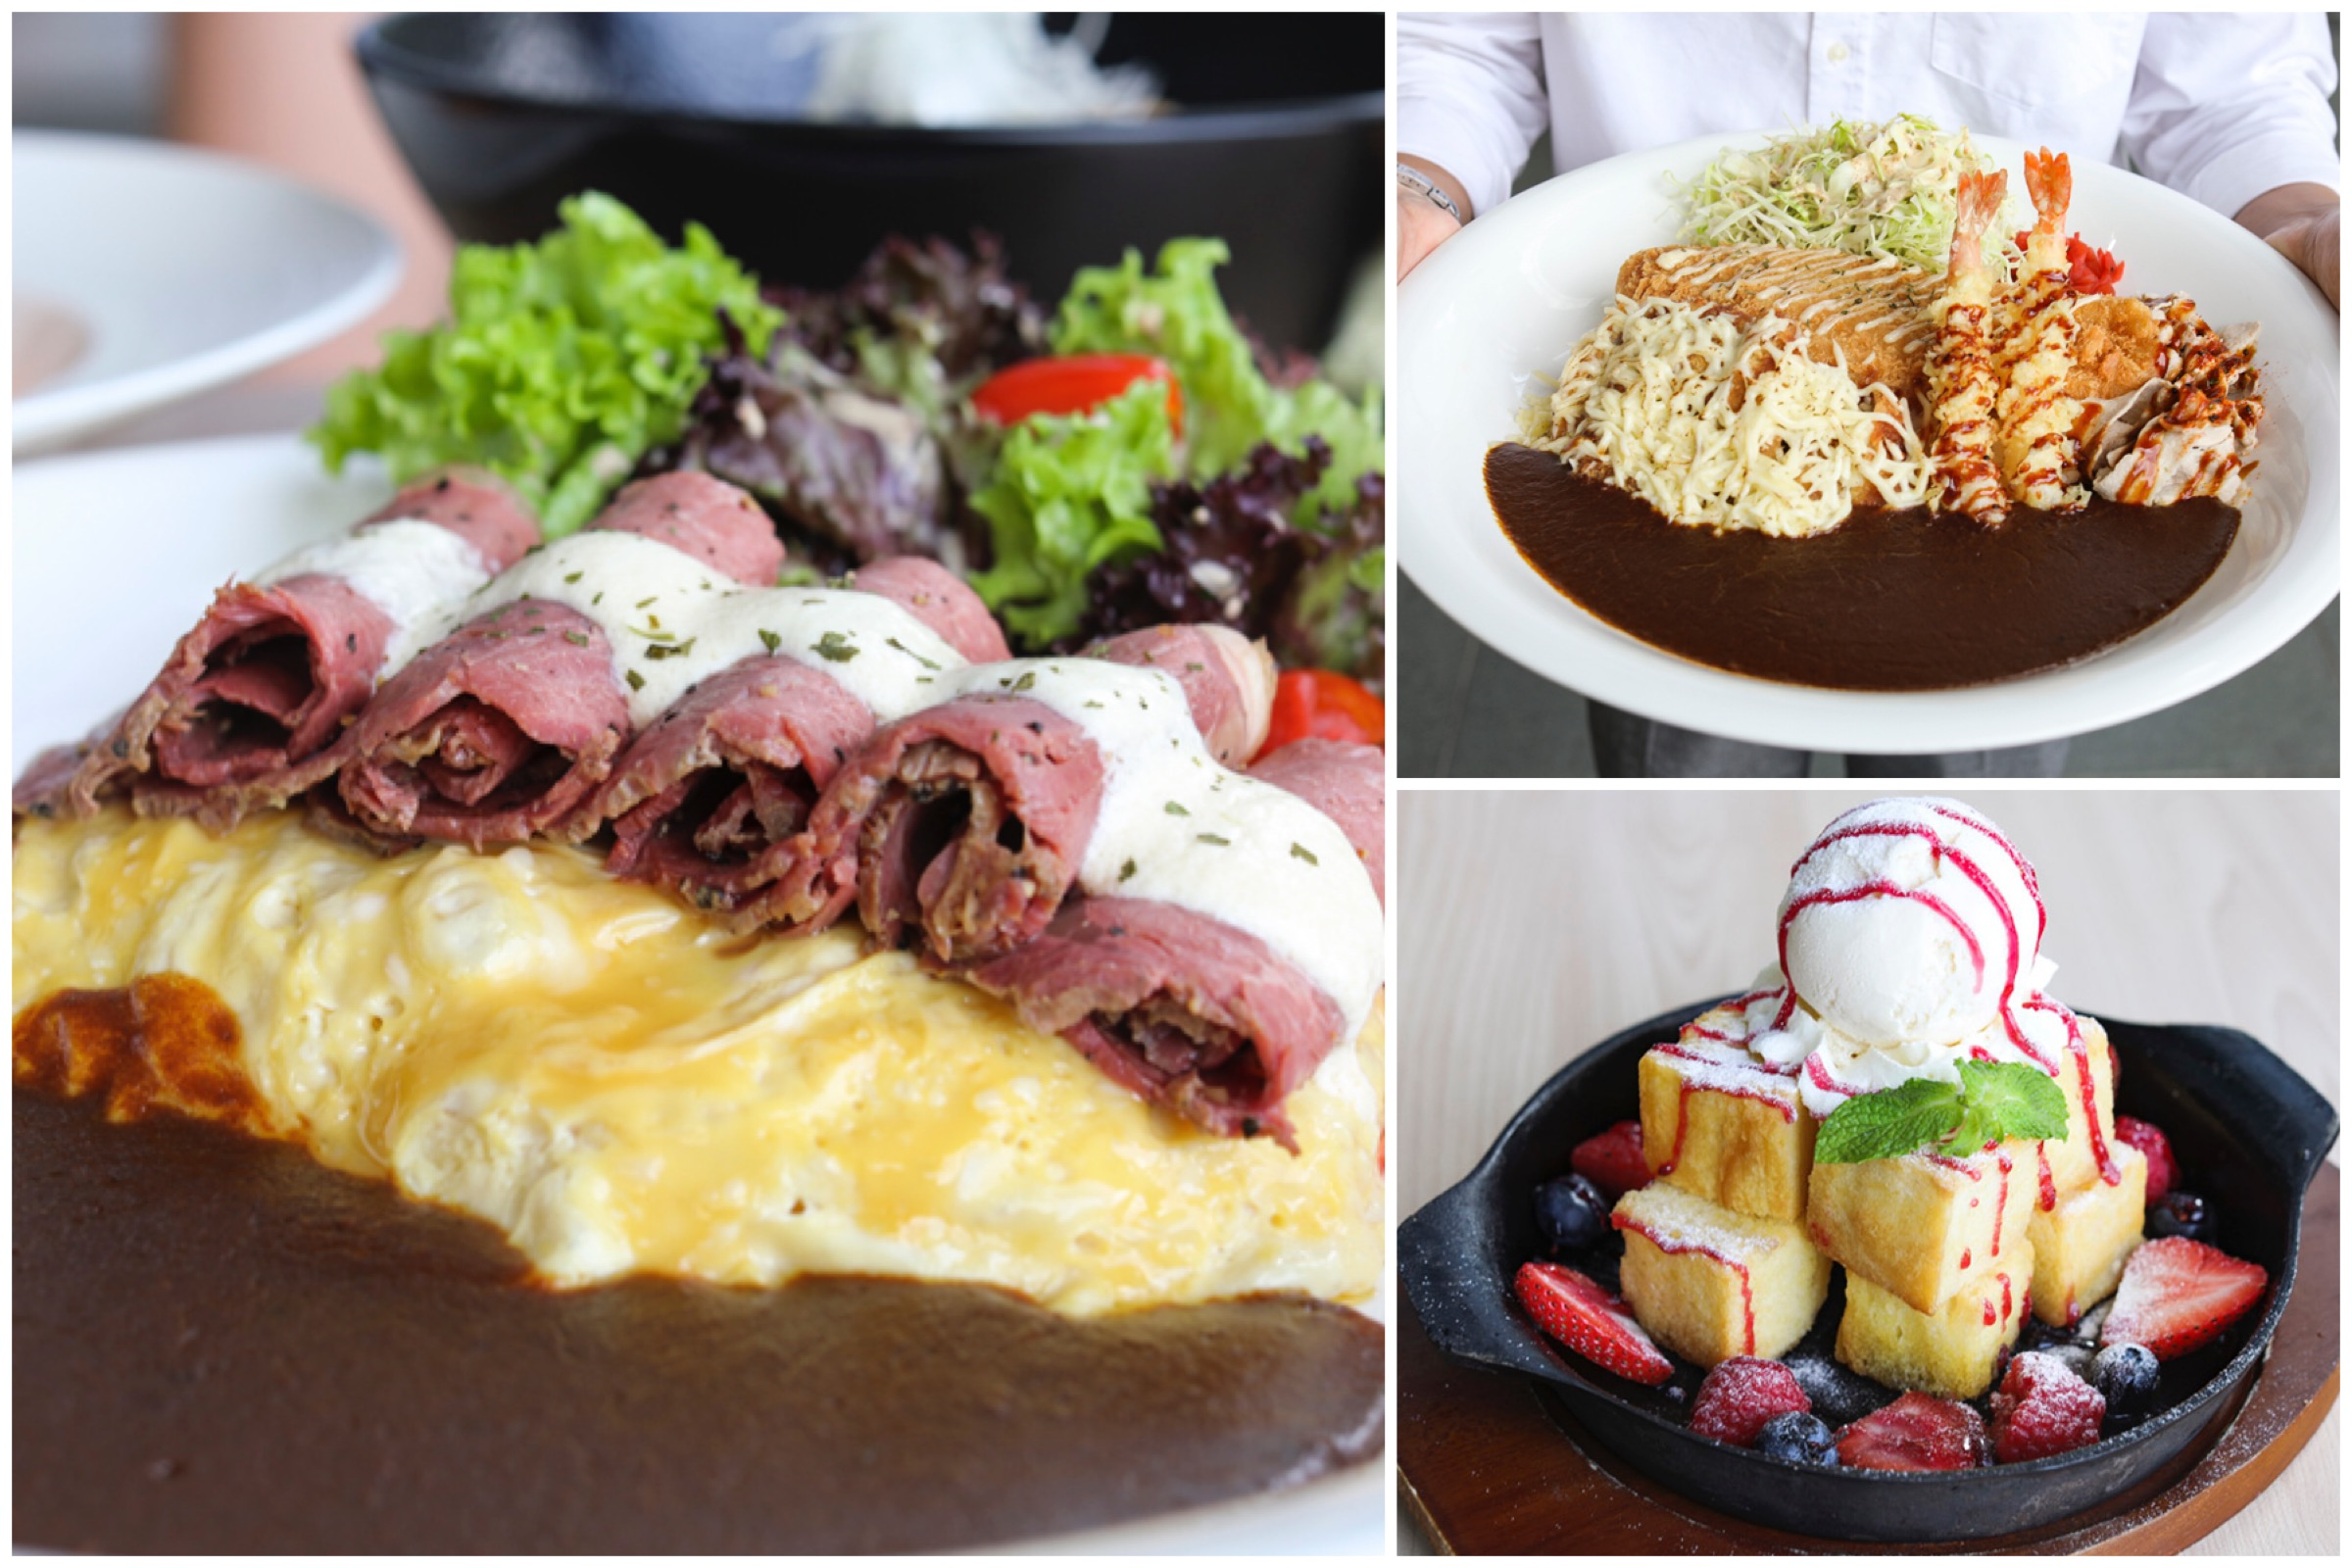 Monster Curry - Premium Roast Beef Japanese Curry Rice At $13.80, Plus 50% OFF Weekday Lunch Sets